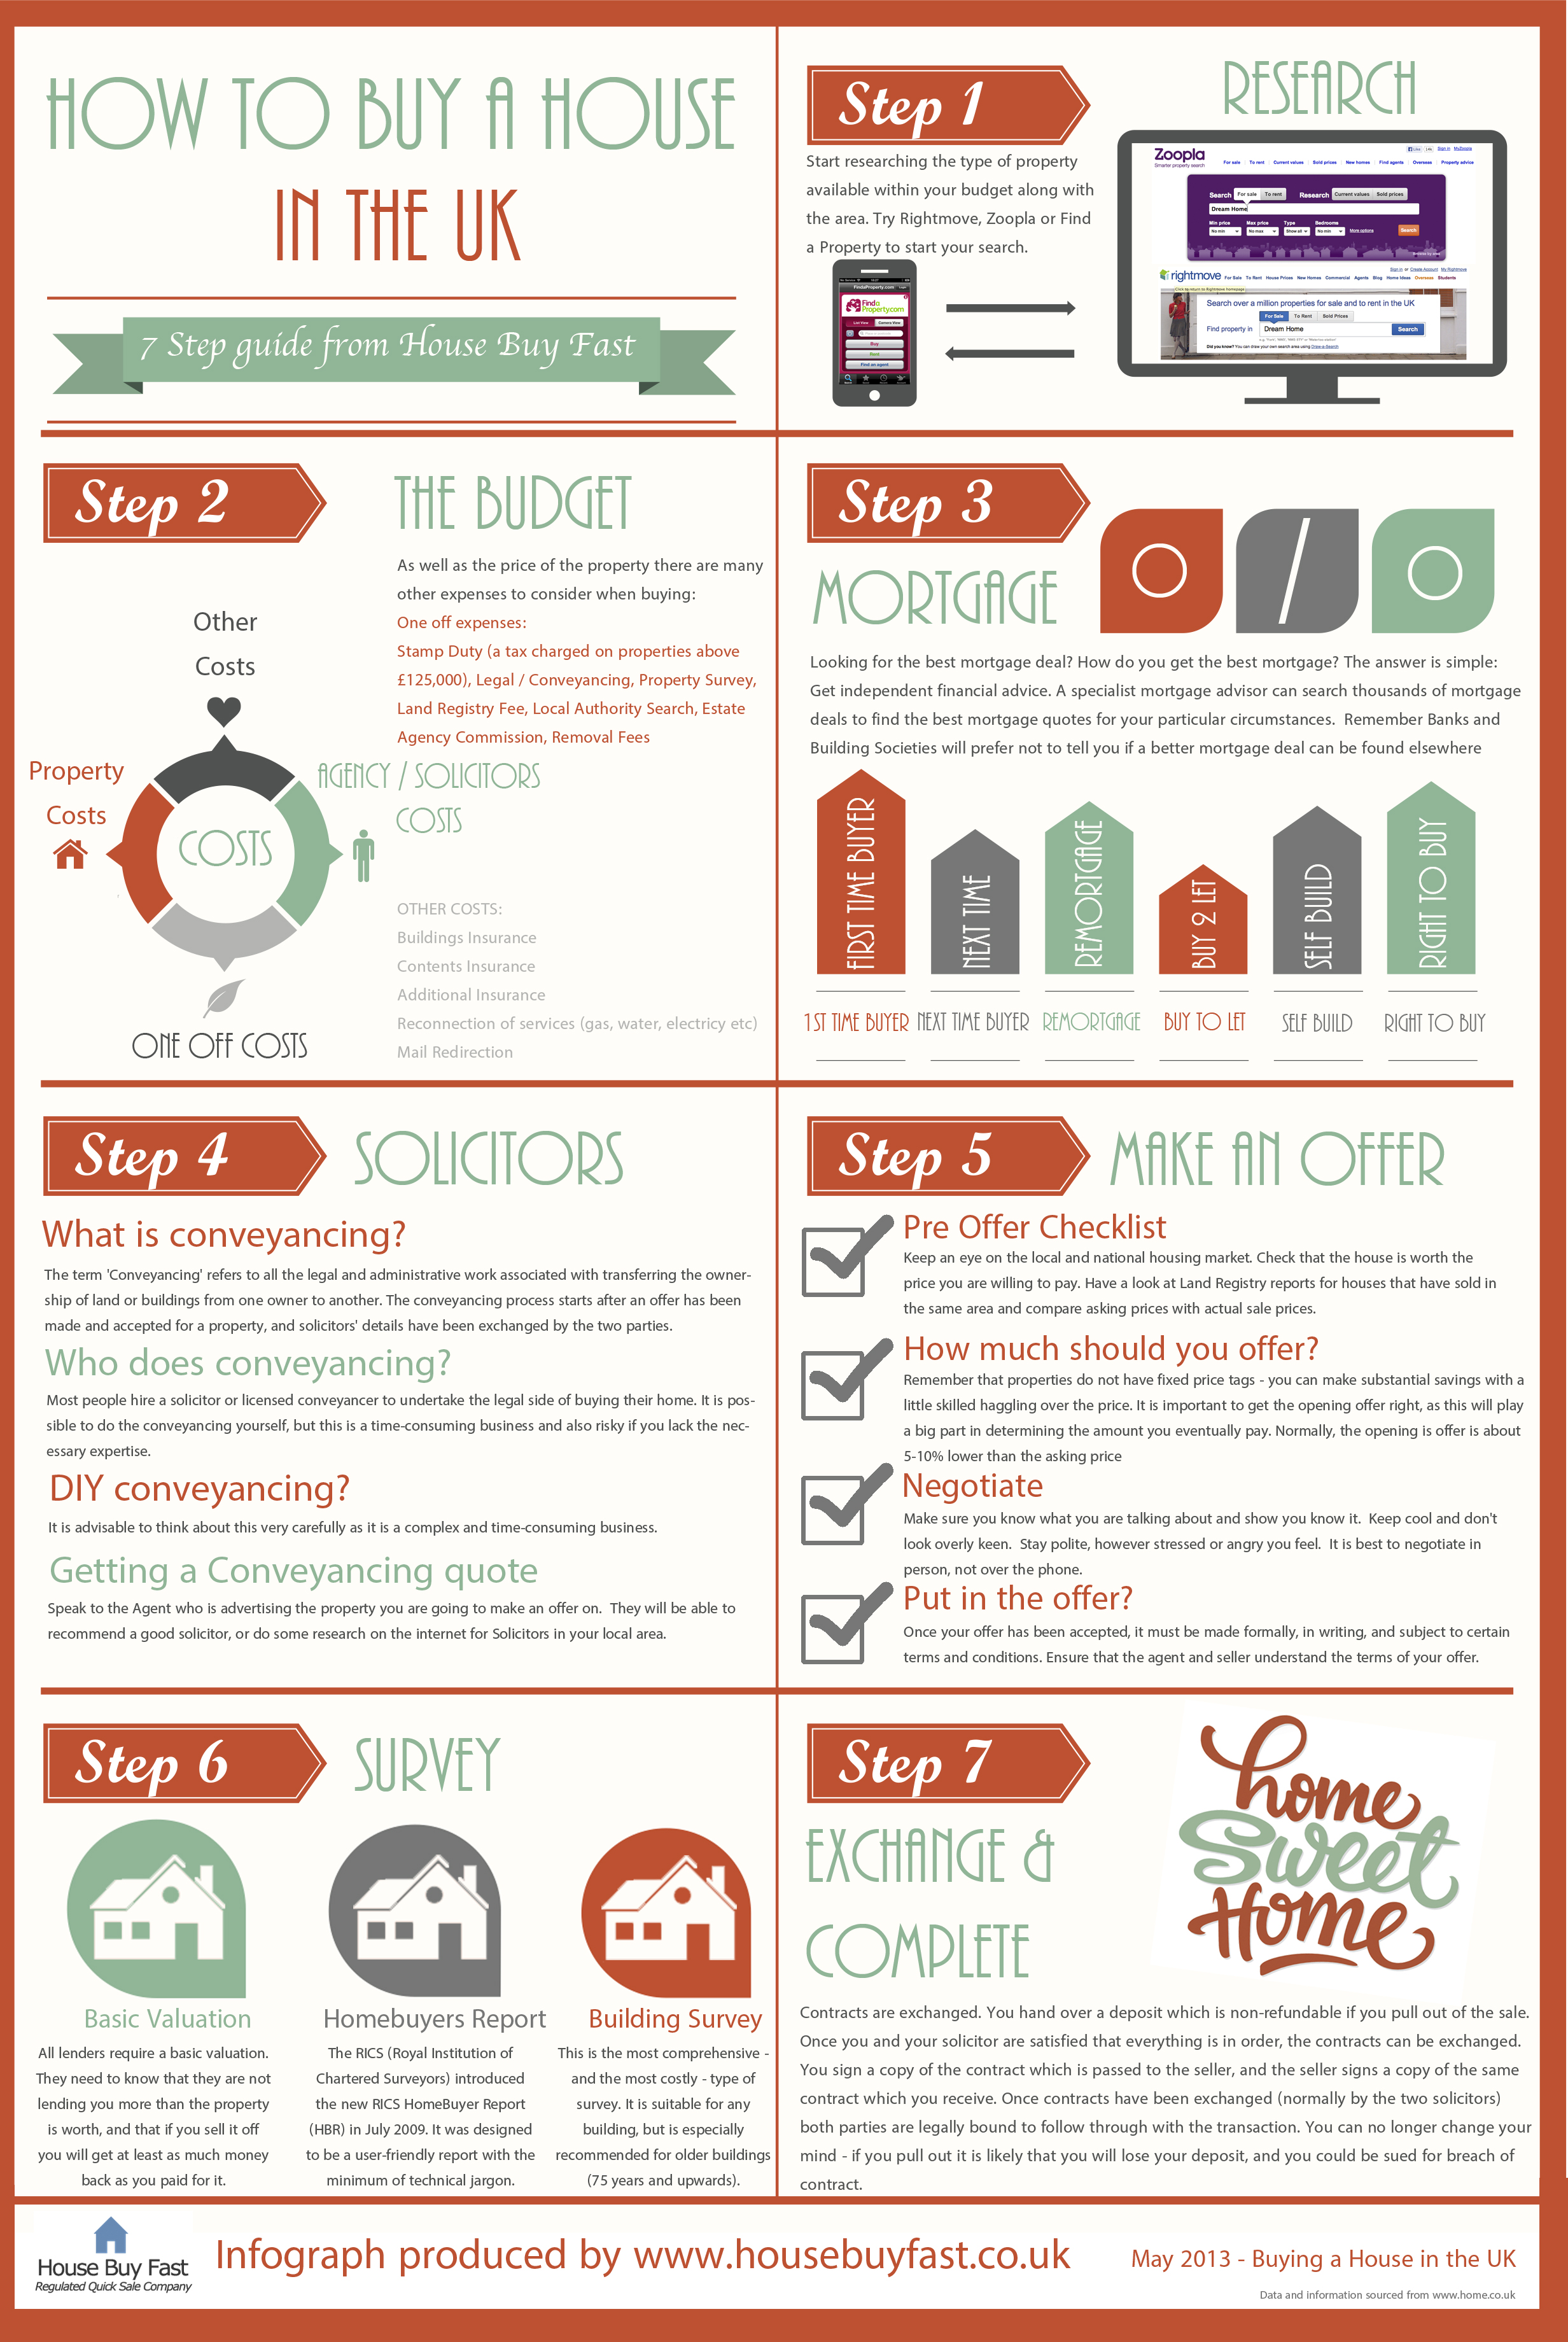 How To Buy A House In The Uk Visual